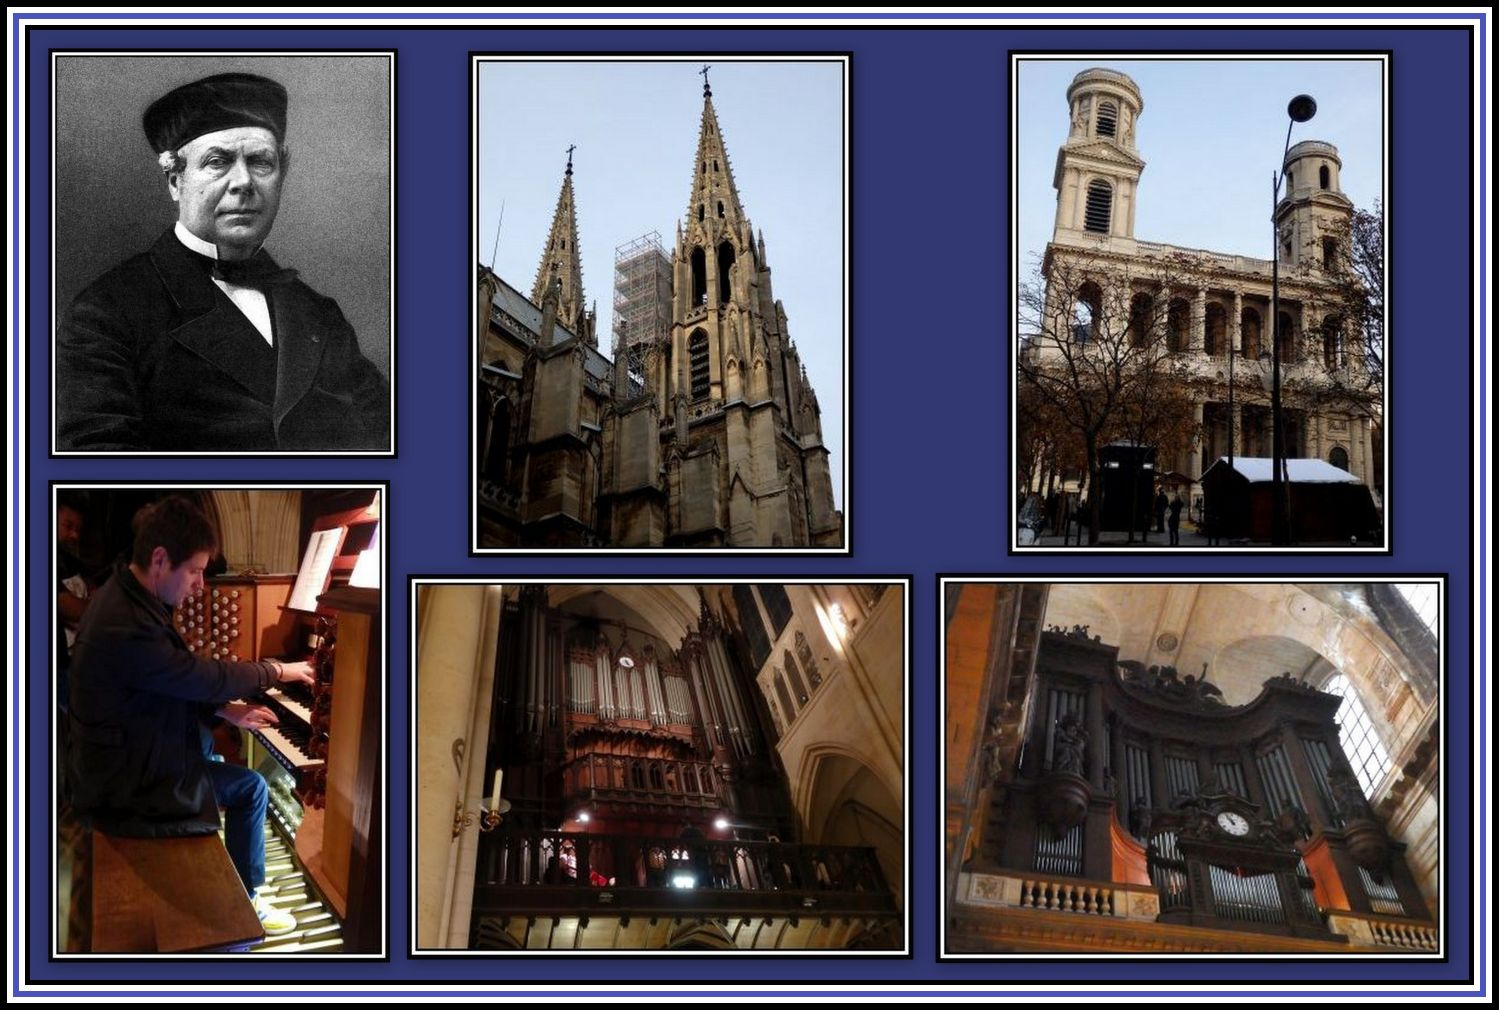 Cavaille-Coll Organs Collage 1